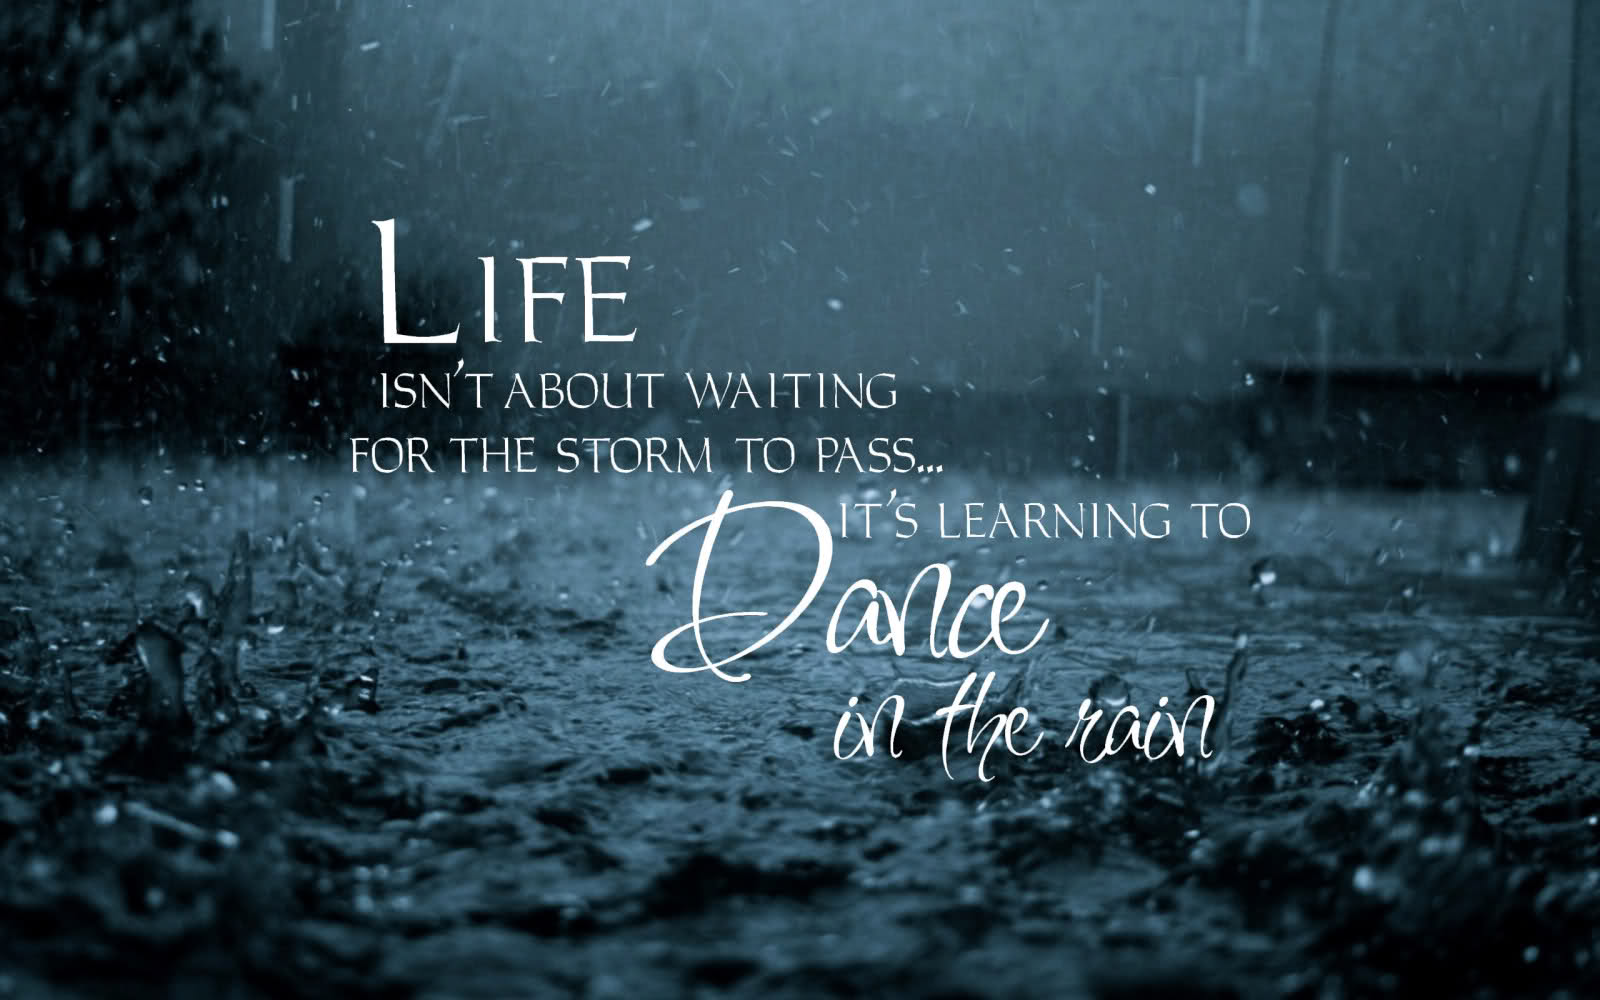 Inspirational Quotes On Rain Quotesgram